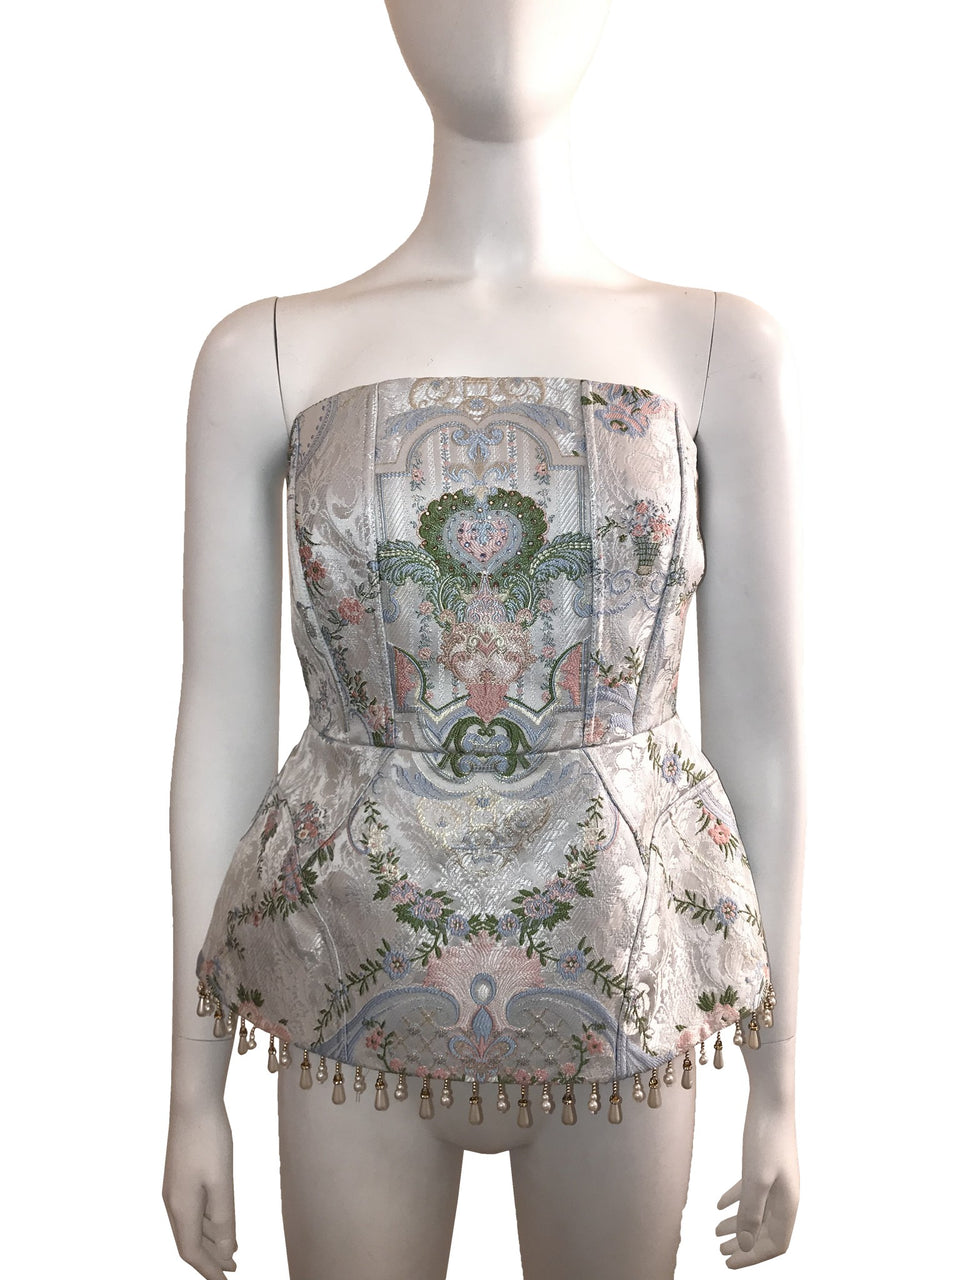 Brocade Corseted Bustier w/ Peplum and Pearl Beads